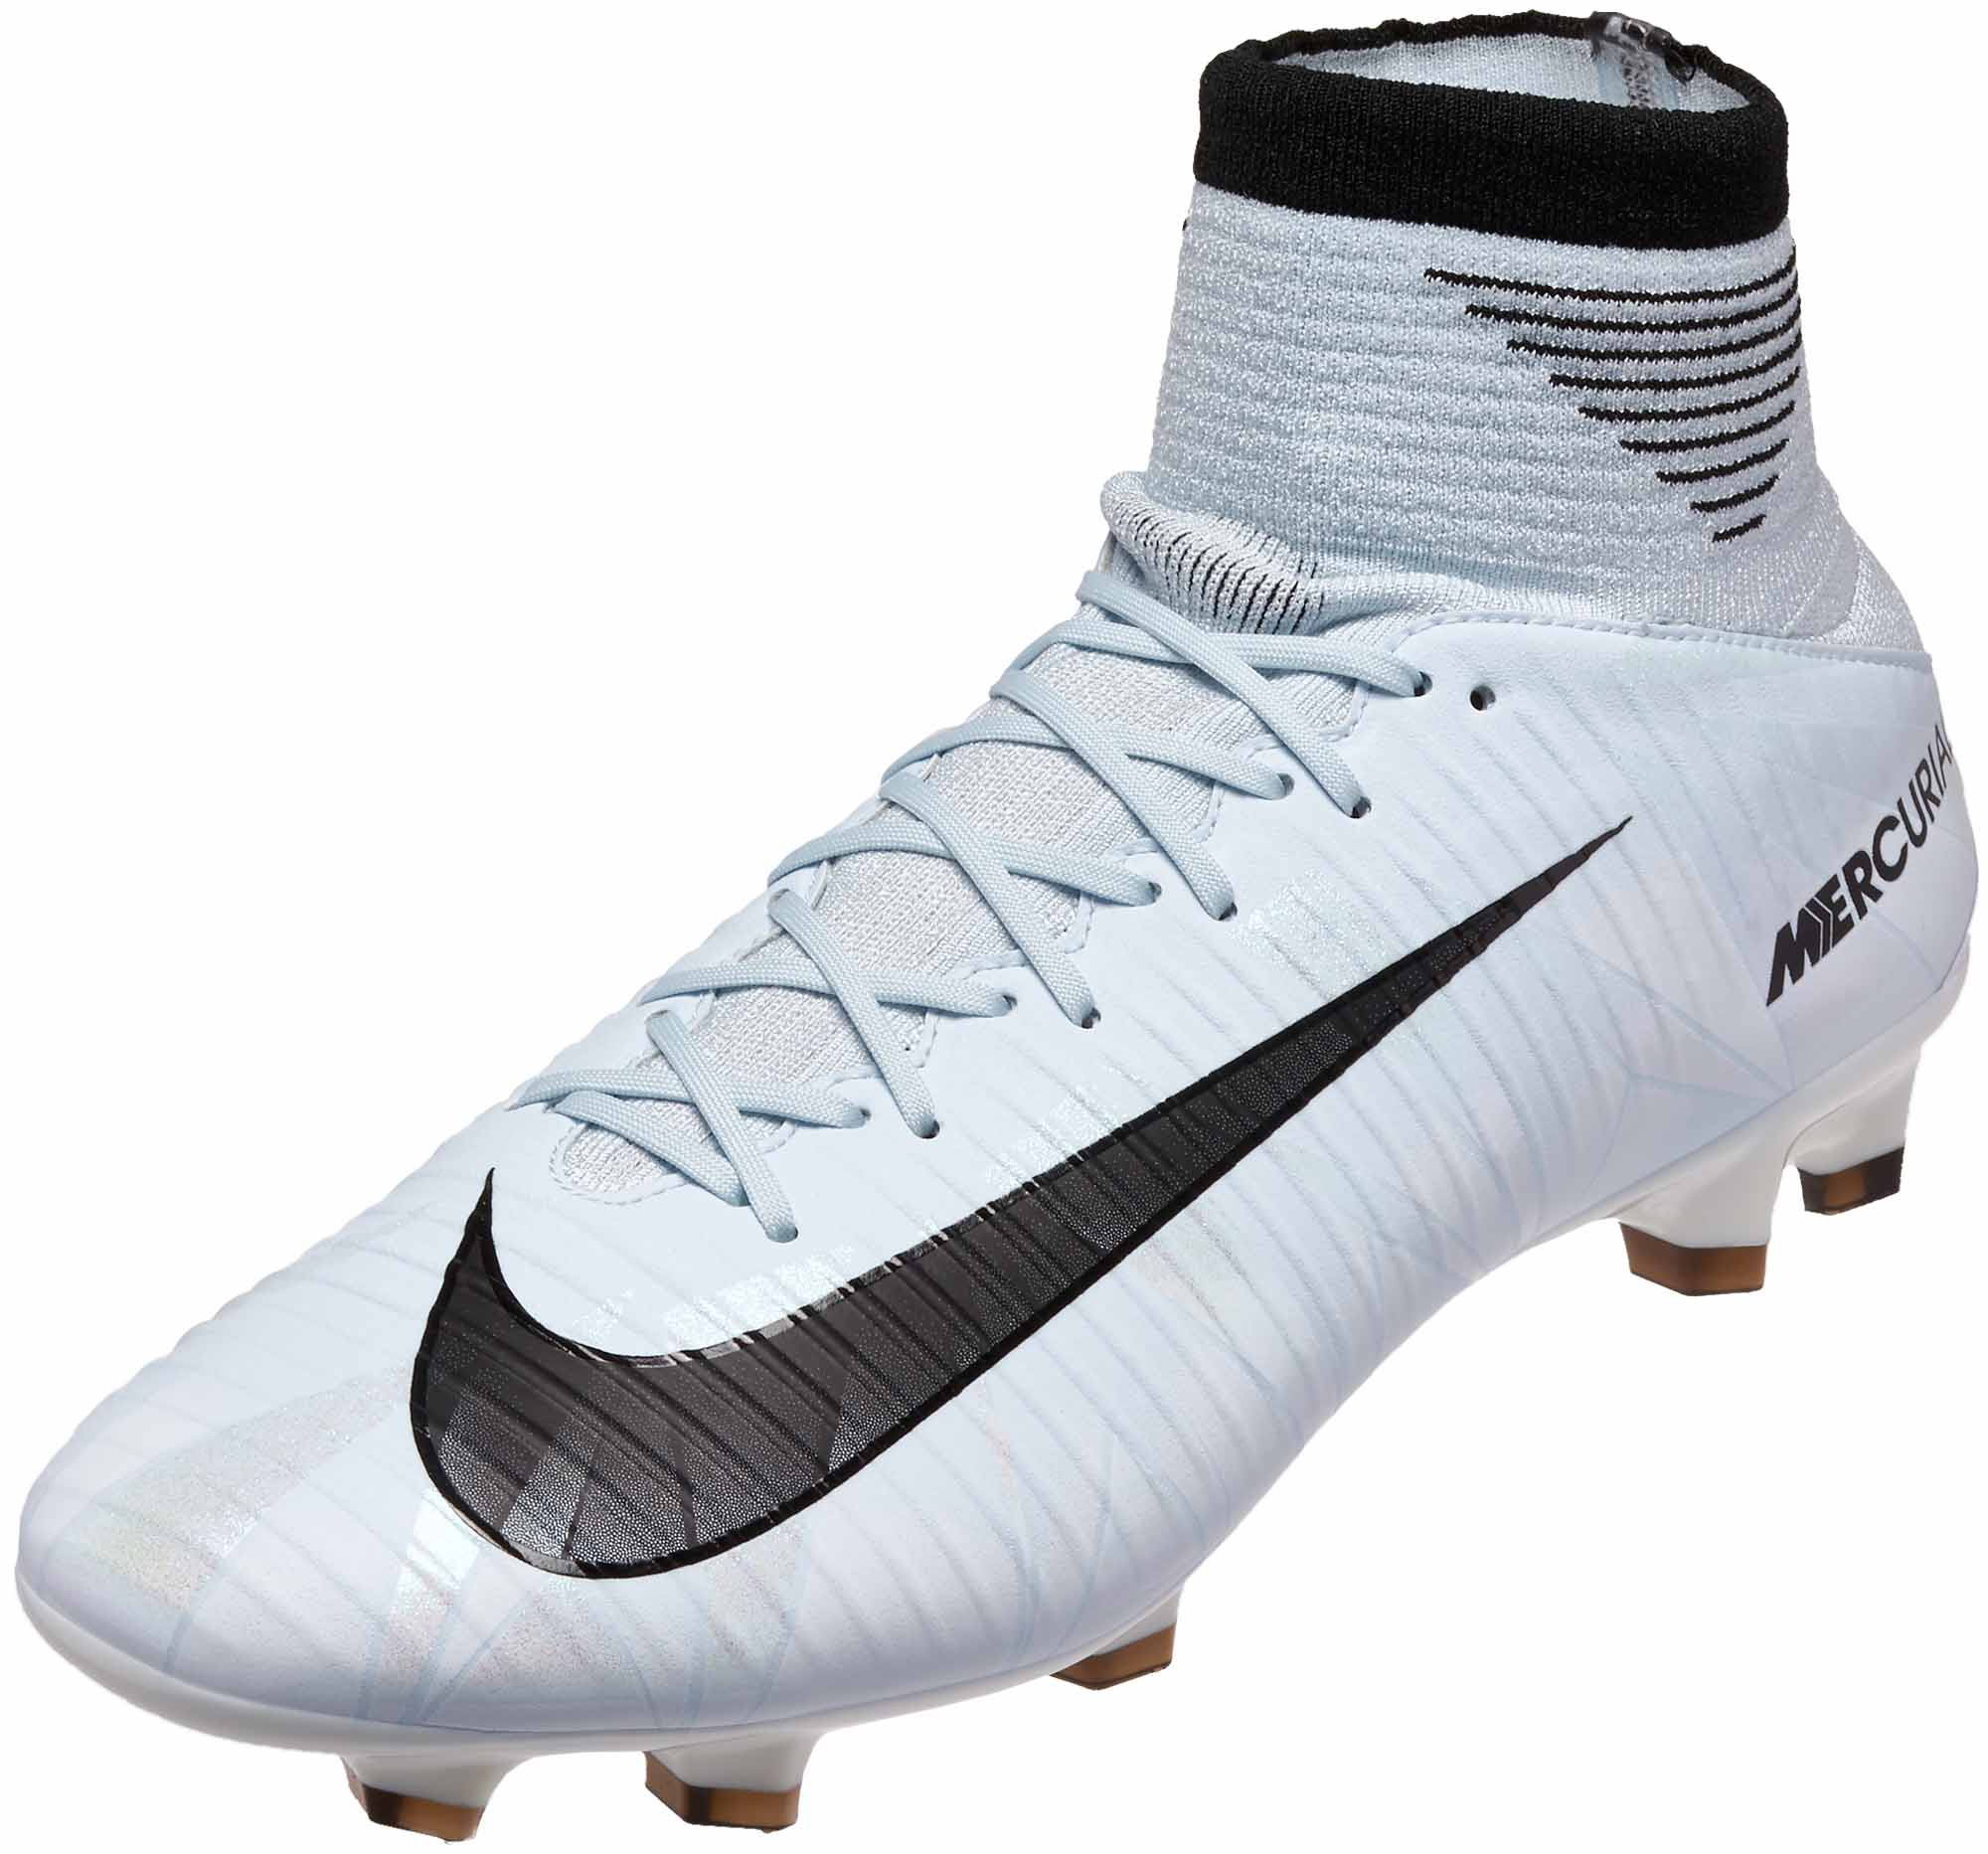 huge selection of a06f9 38932 Nike Mercurial Veloce III DF FG – CR7 – Blue Tint   Black